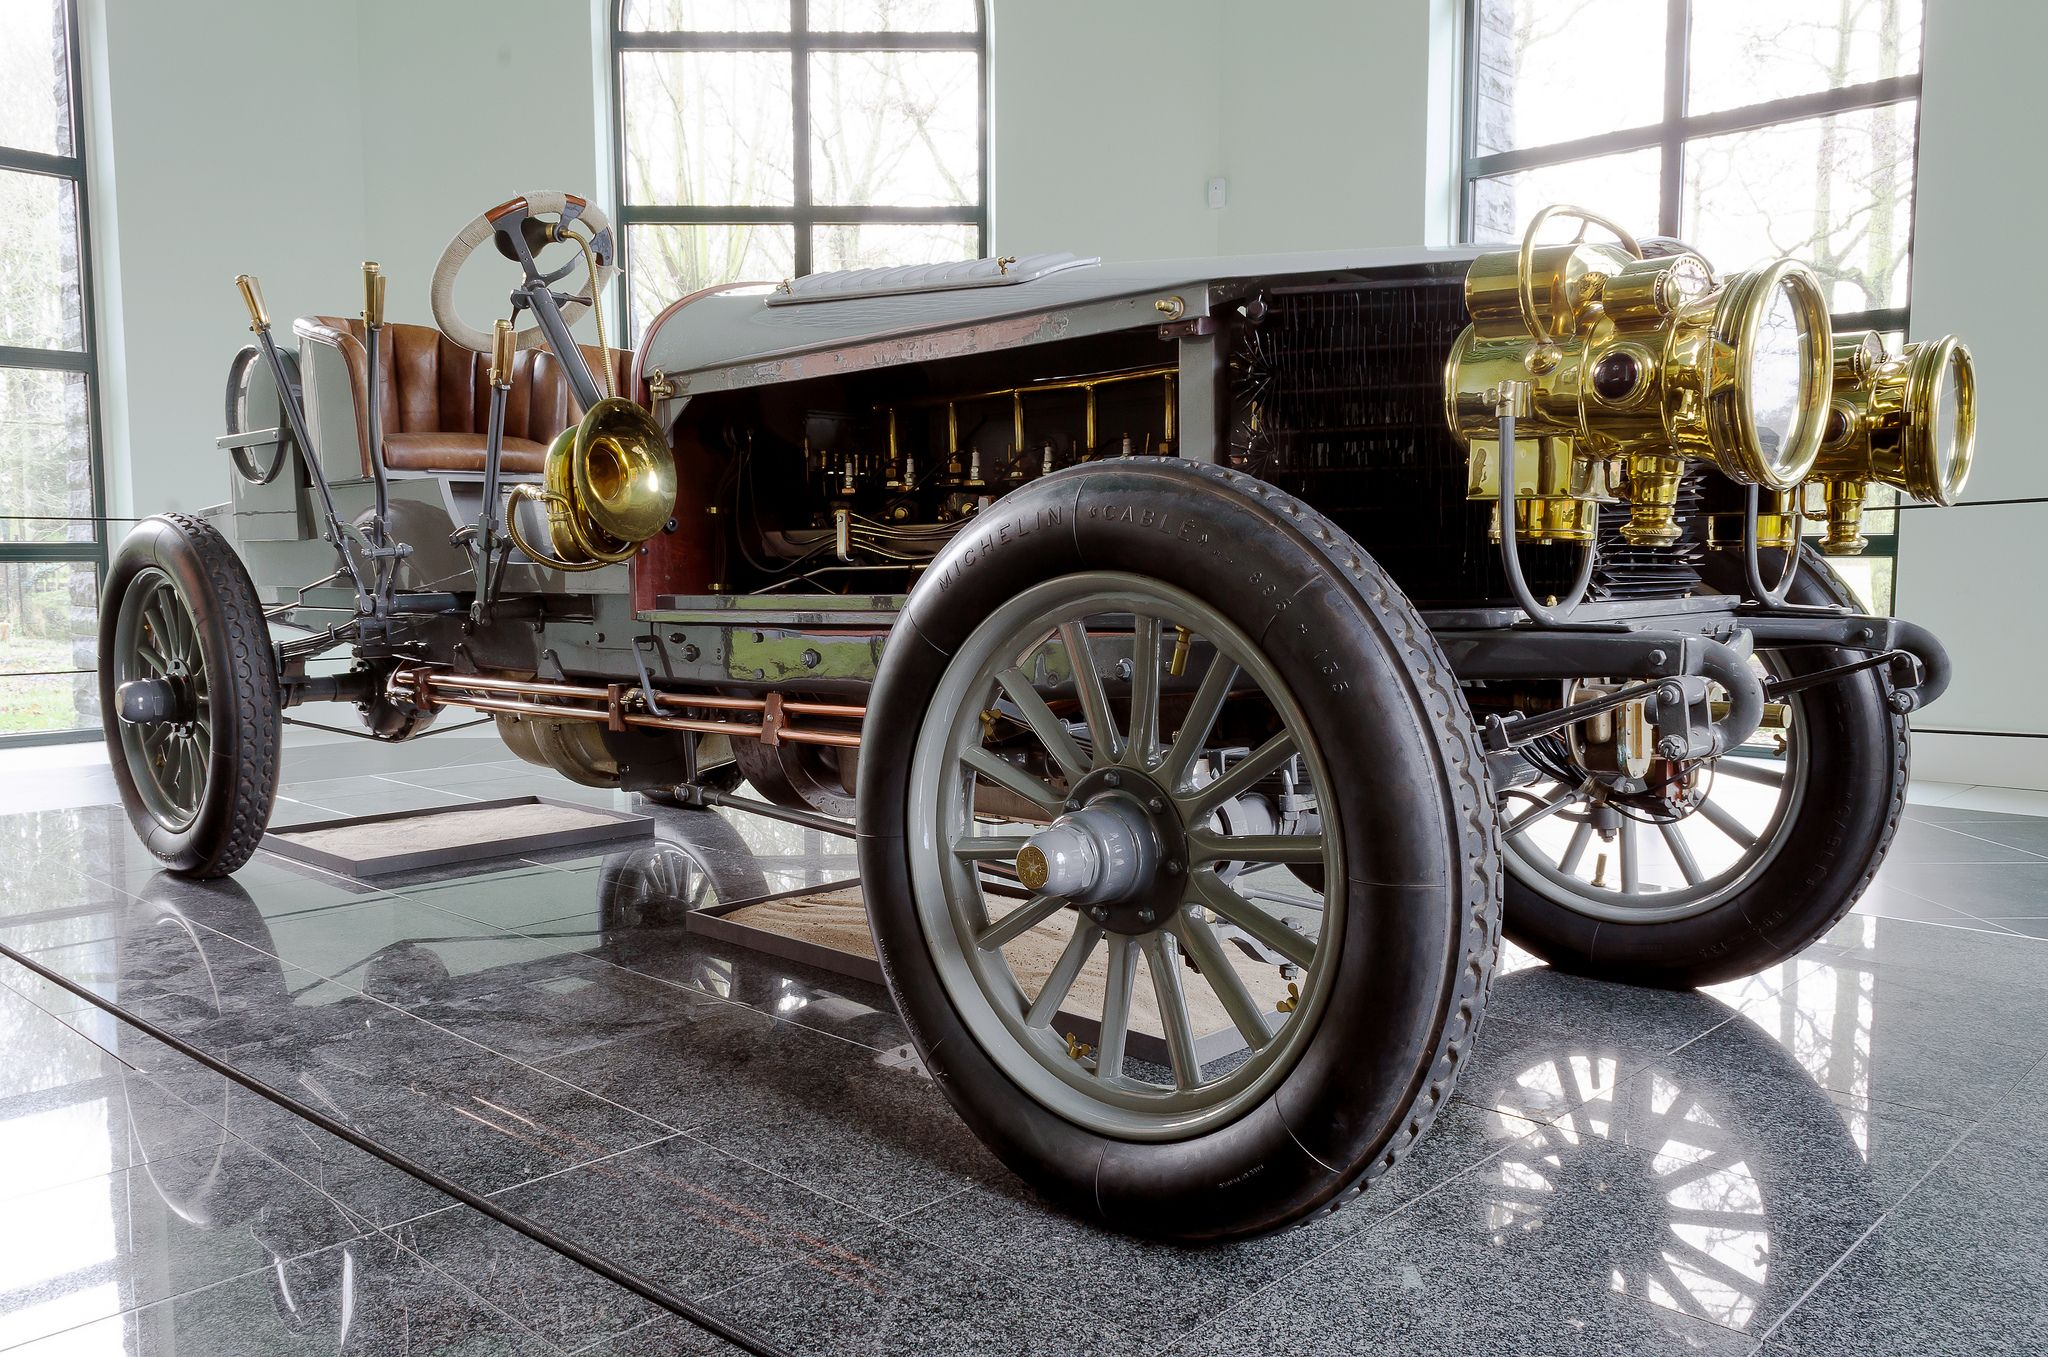 Spyker 60-HP Four-wheel Drive Racing Car 1903 | Car manufacturers ...